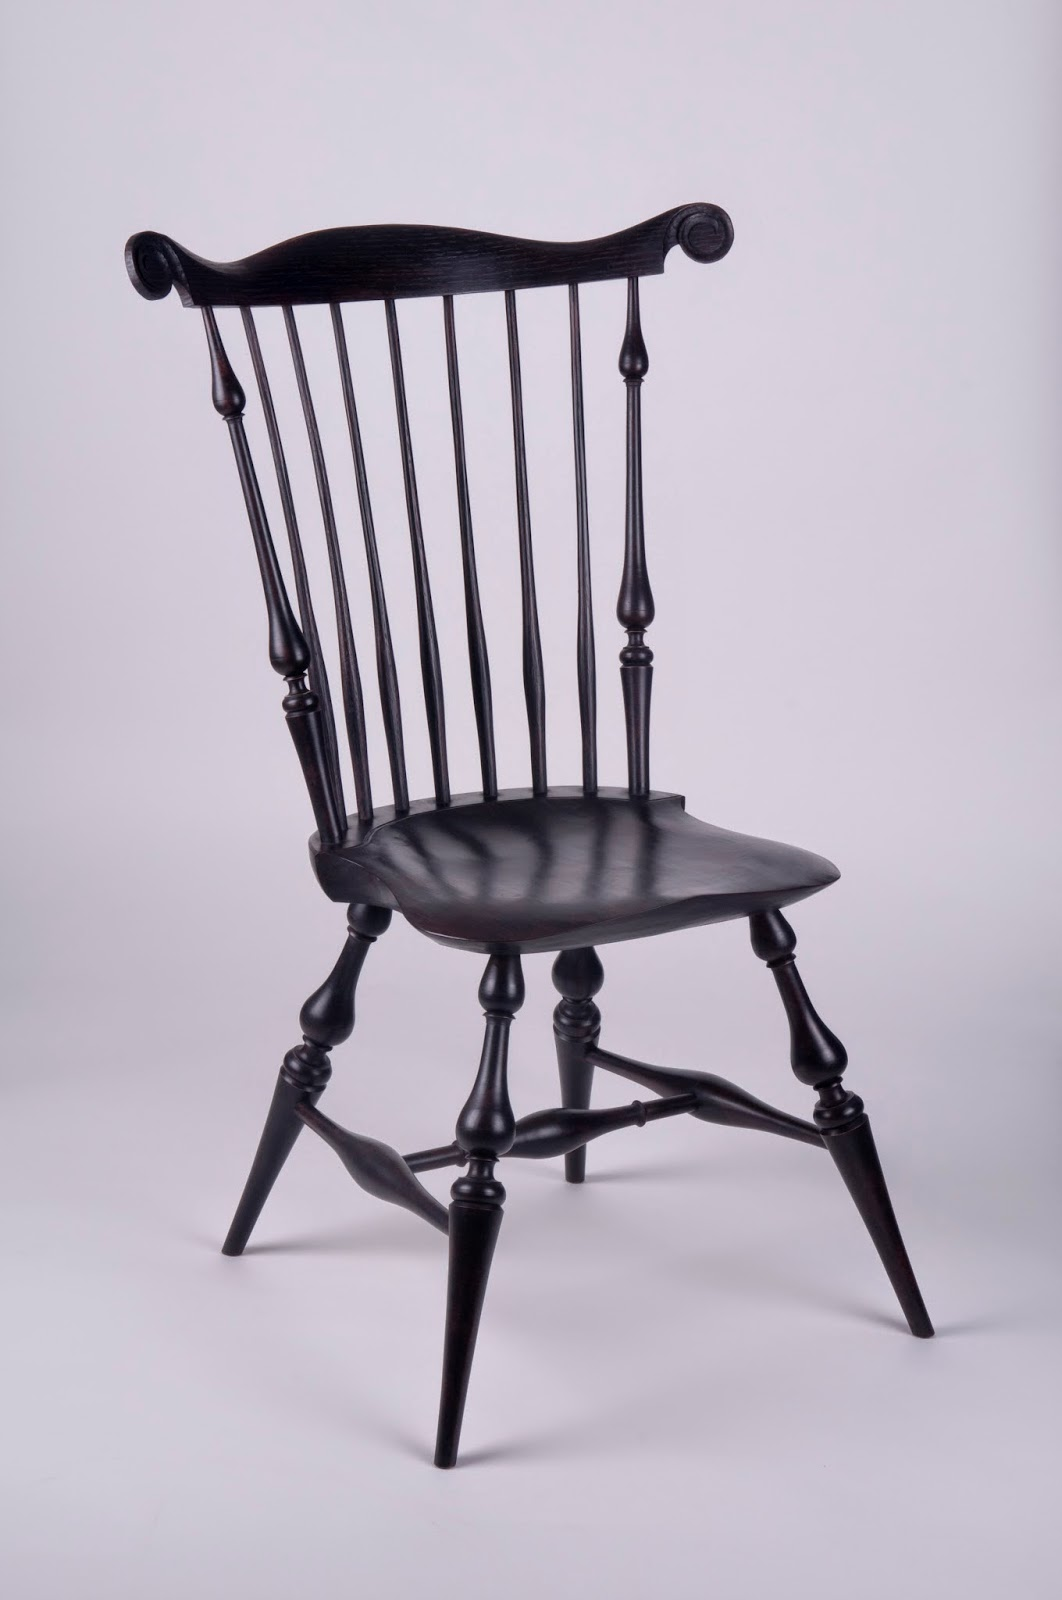 Caleb James Chairmaker Planemaker: Fan Back Windsor Chair Plans By Curtis  Buchanan   Now Available!